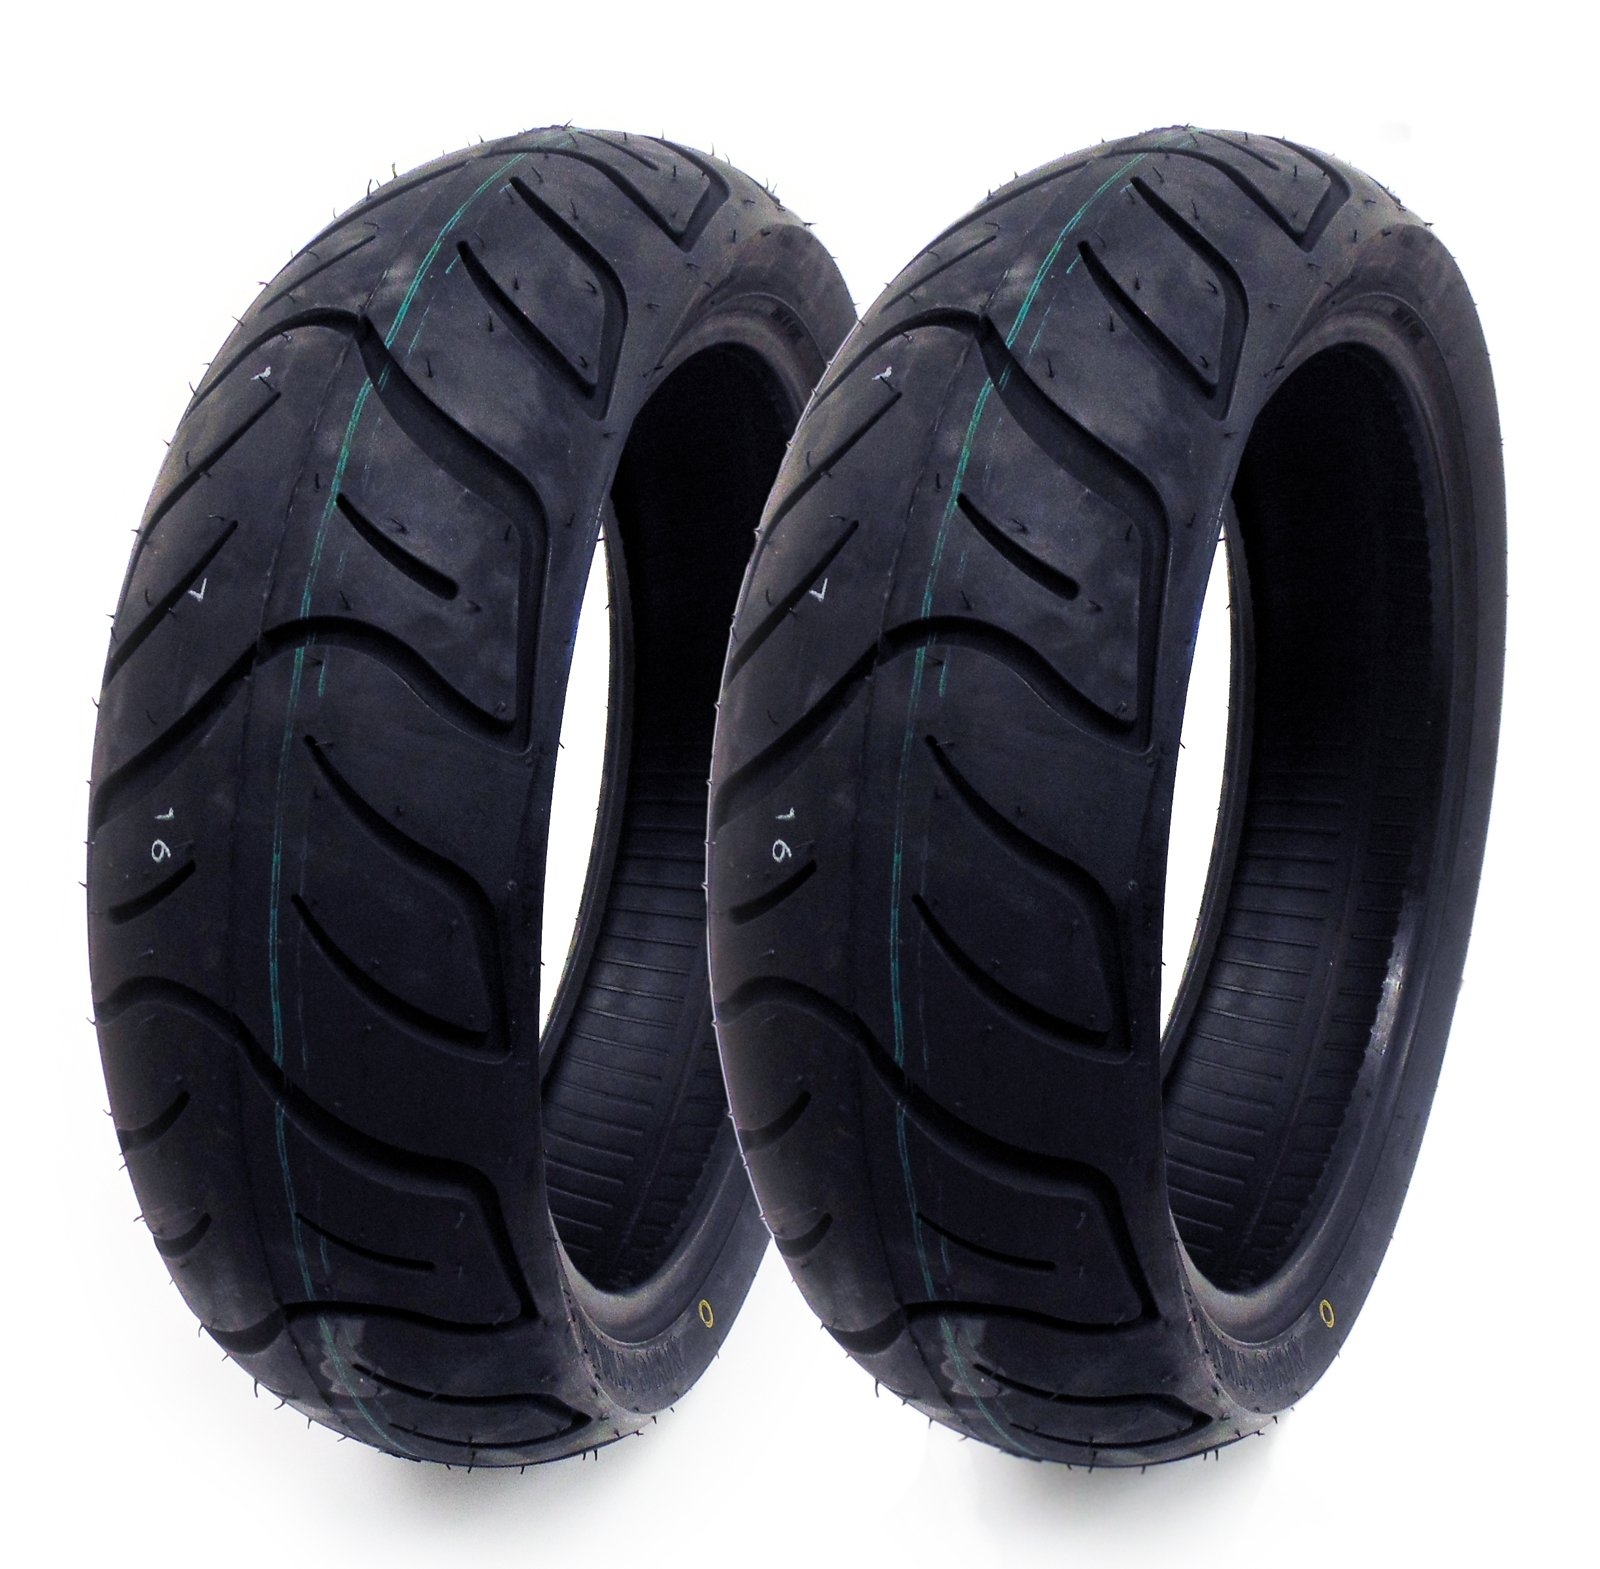 MMG Set of 2 Tires 130/60-13 Tubeless Front or Rear Motorcycle Scooter Moped by MMG